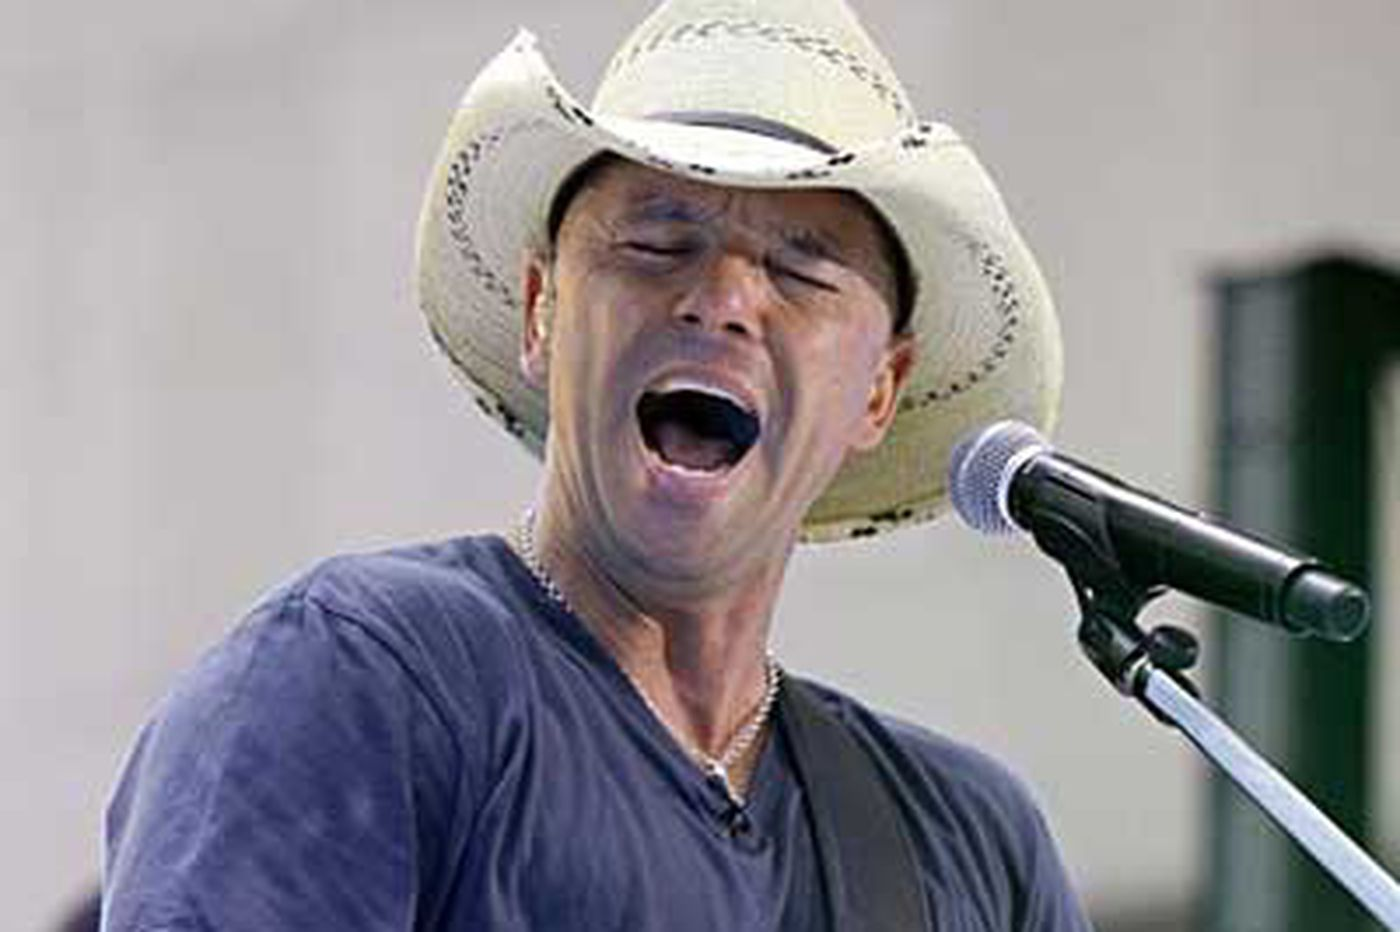 Kenny Chesney delivers feel-good summer show